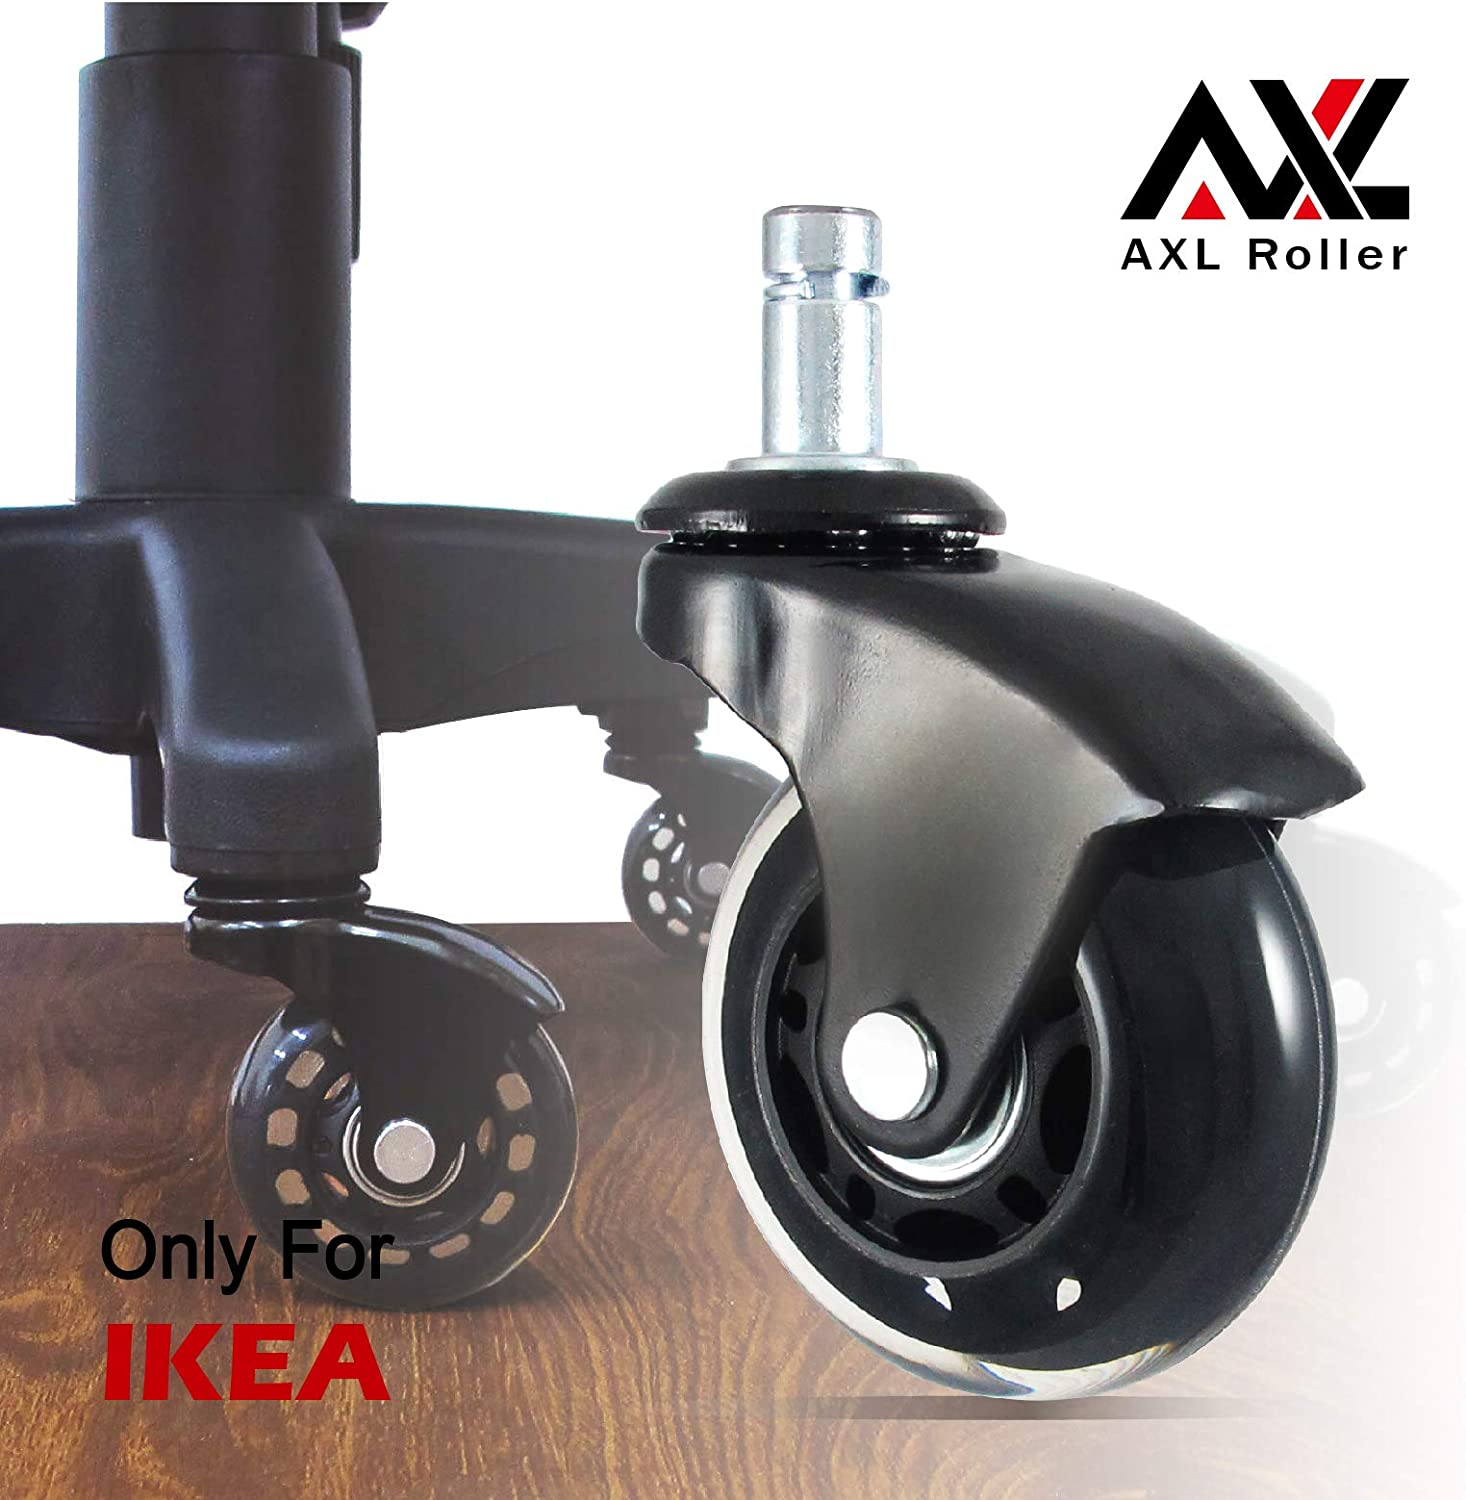 AXL 2.5 inch Office Chair Caster Wheel Replacement for Roller Blade Wheels Heavy Duty Casters for Hardwood Floors Safe (IKEA 10mm) (2.5 inch Black, Black/Clear)